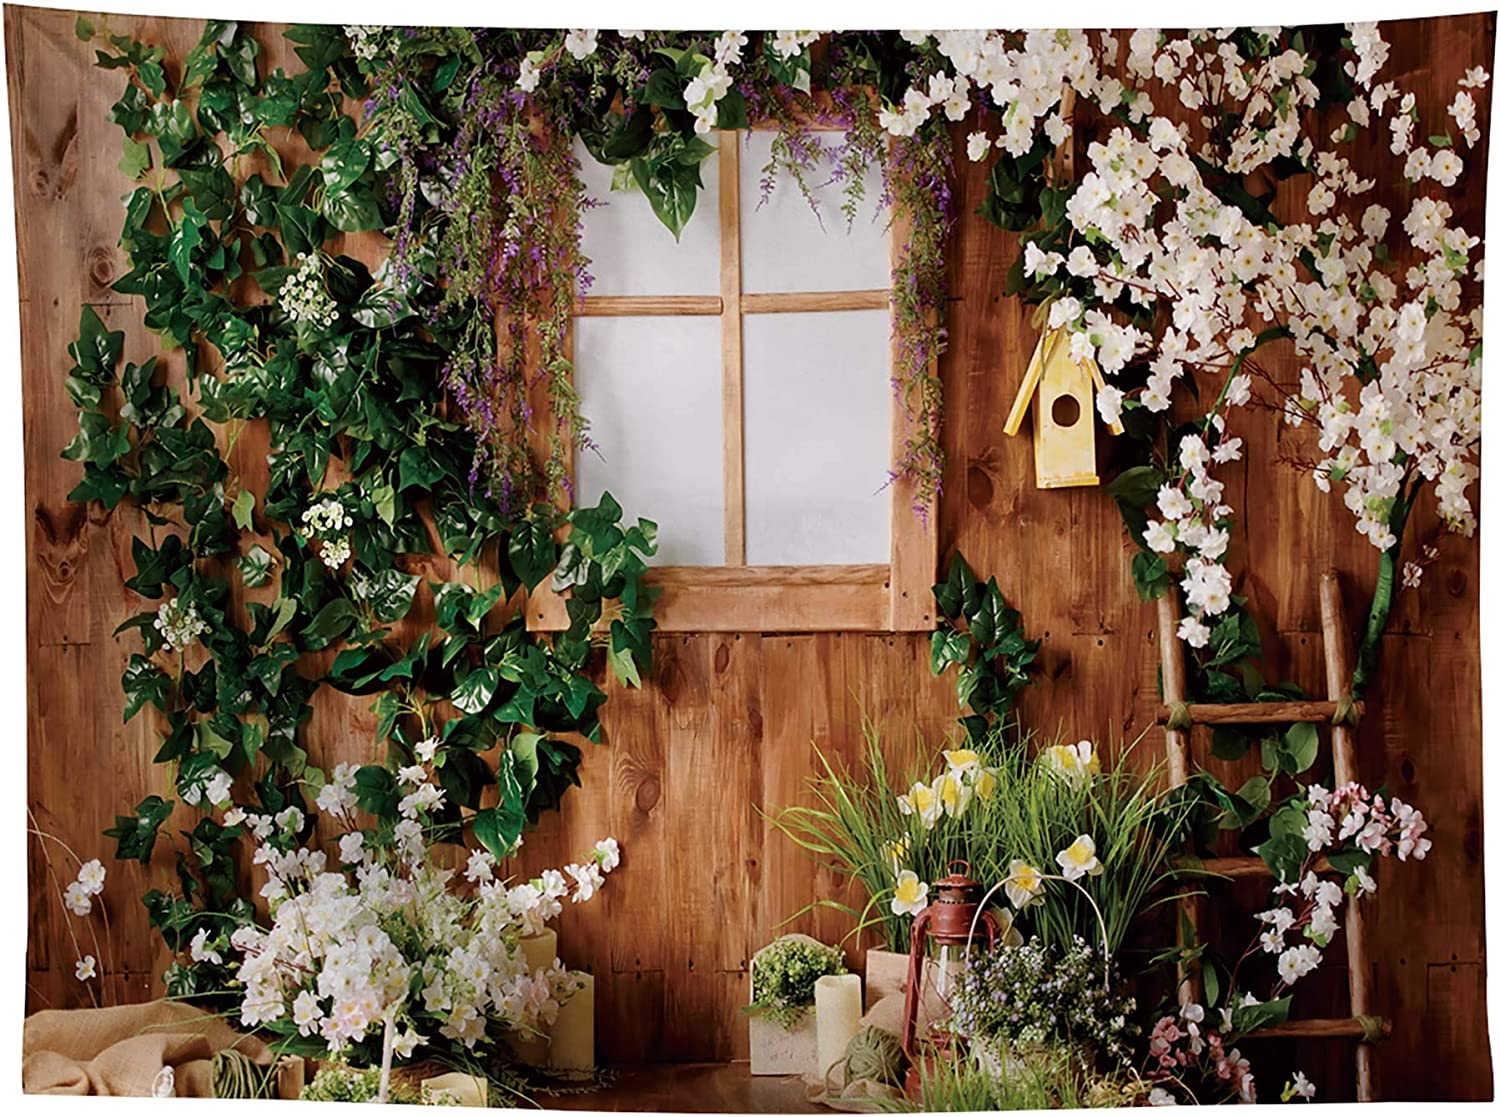 Allenjoy 8x6ft Rustic Wood Happy Easter Photography Backdrop for Newborn Baby Shower Birthday Party Supplies Decorations Spring Garden Floral Studio Portrait Pictures Shoot Props Favors Background